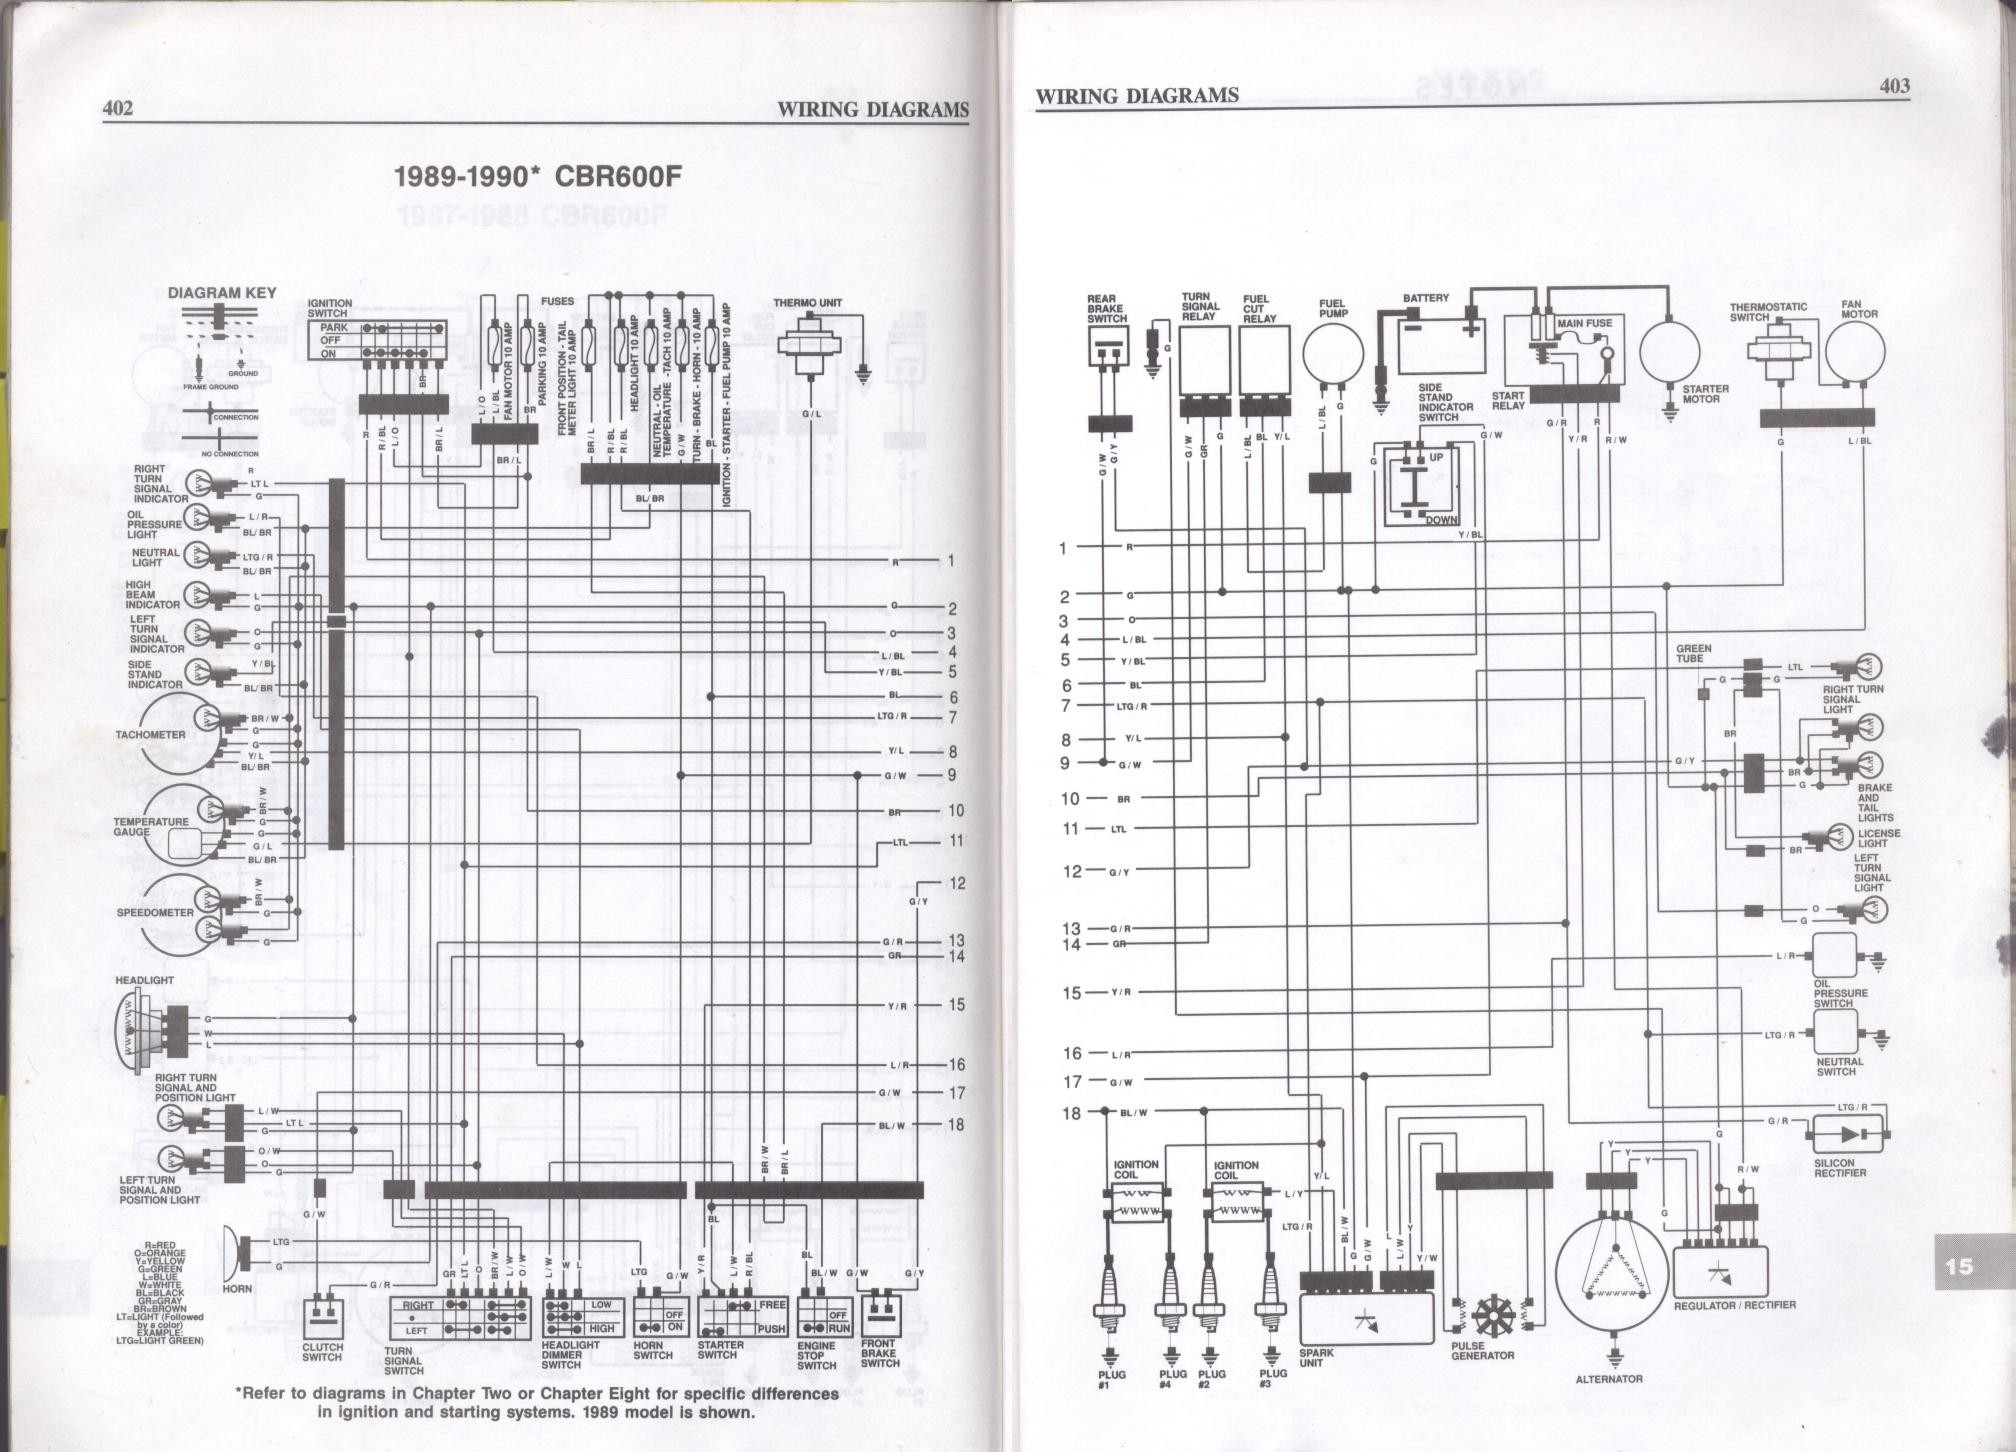 Kawasaki Wiring Diagrams 05 Gsxr 600 Wiring Diagram Wiring Wiring Diagrams Instructions Of Kawasaki Wiring Diagrams